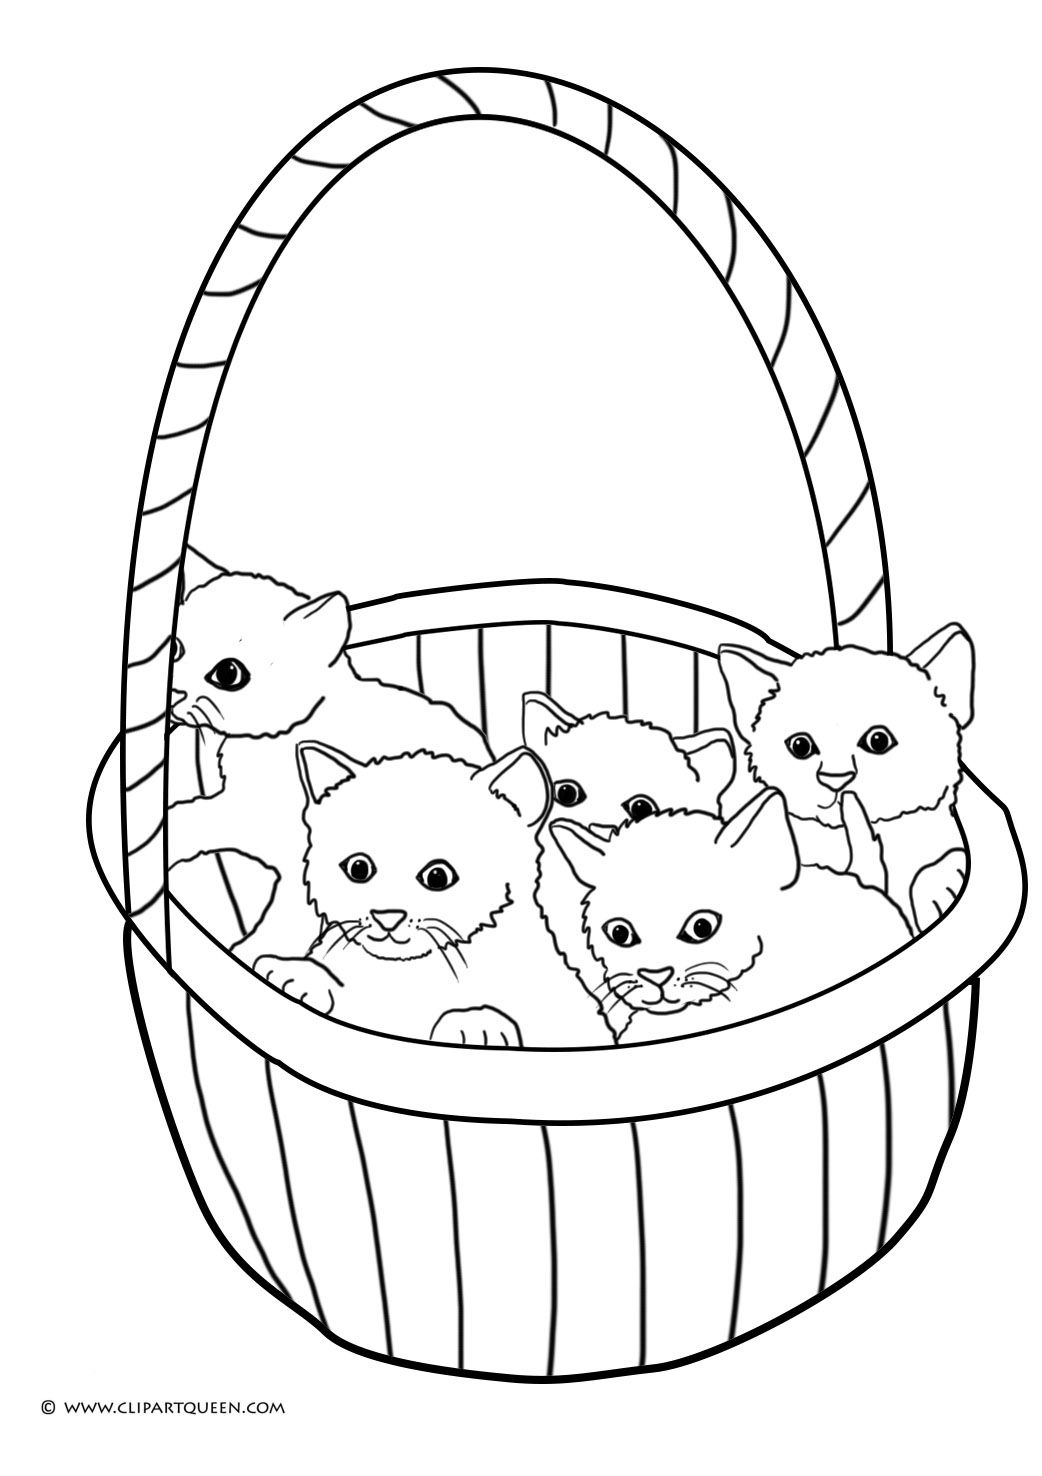 Some Sound Cat Care Tips For Owners Old And New You Can Get More Details By Clicking On The Image Kitten Coloring Book Cat Coloring Page Kittens Coloring